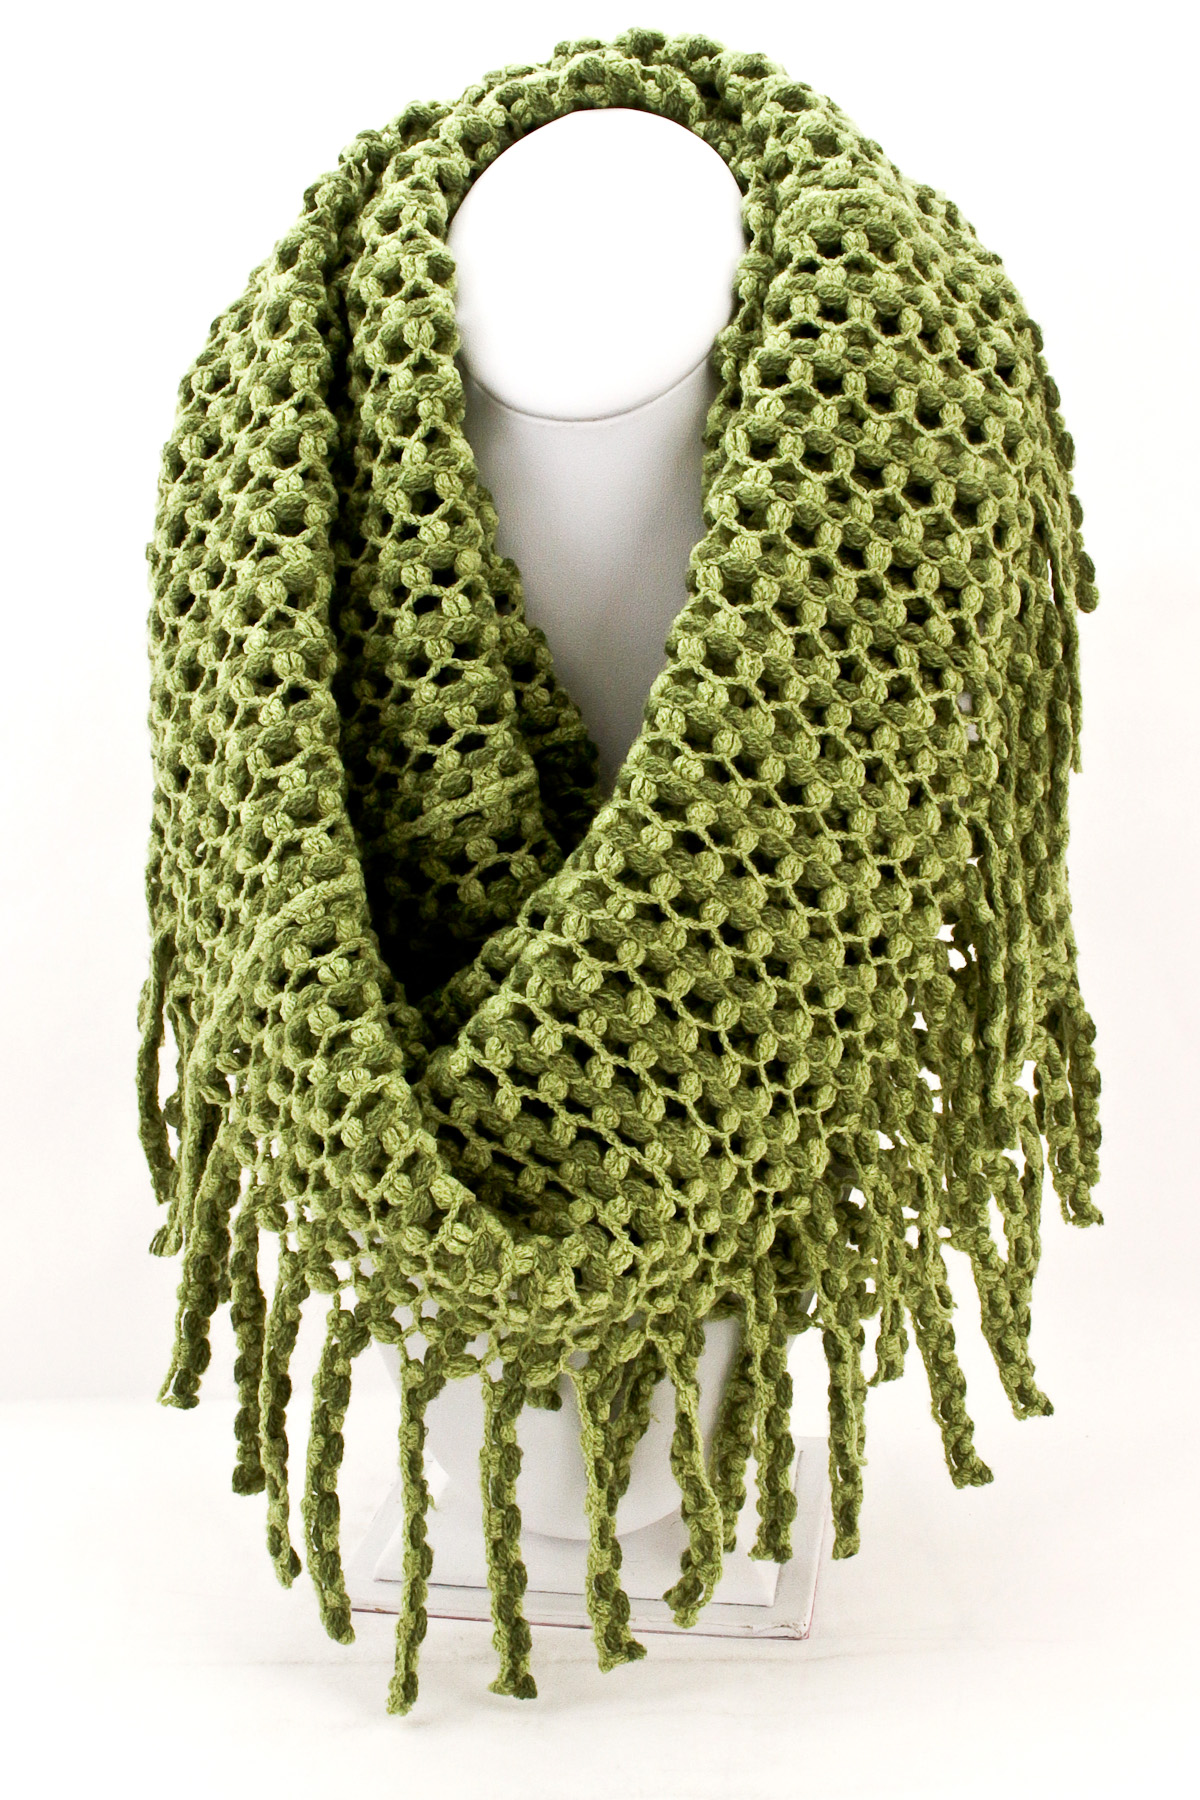 Knitted Fringe Infinity Scarf Scarves